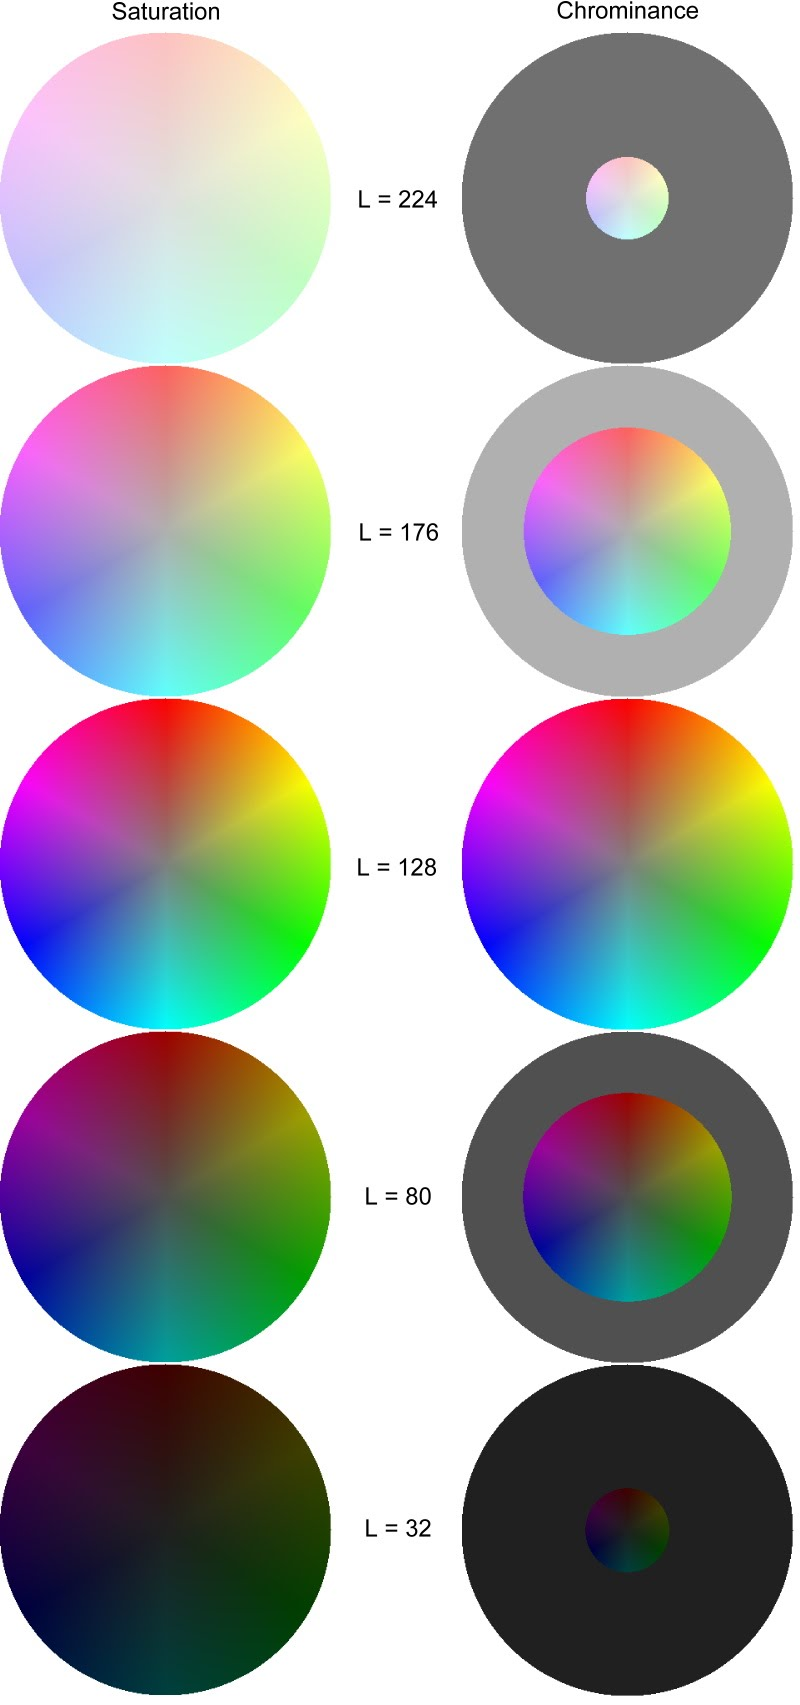 Color Wheels Of HSL And HCL At L 3280128176224